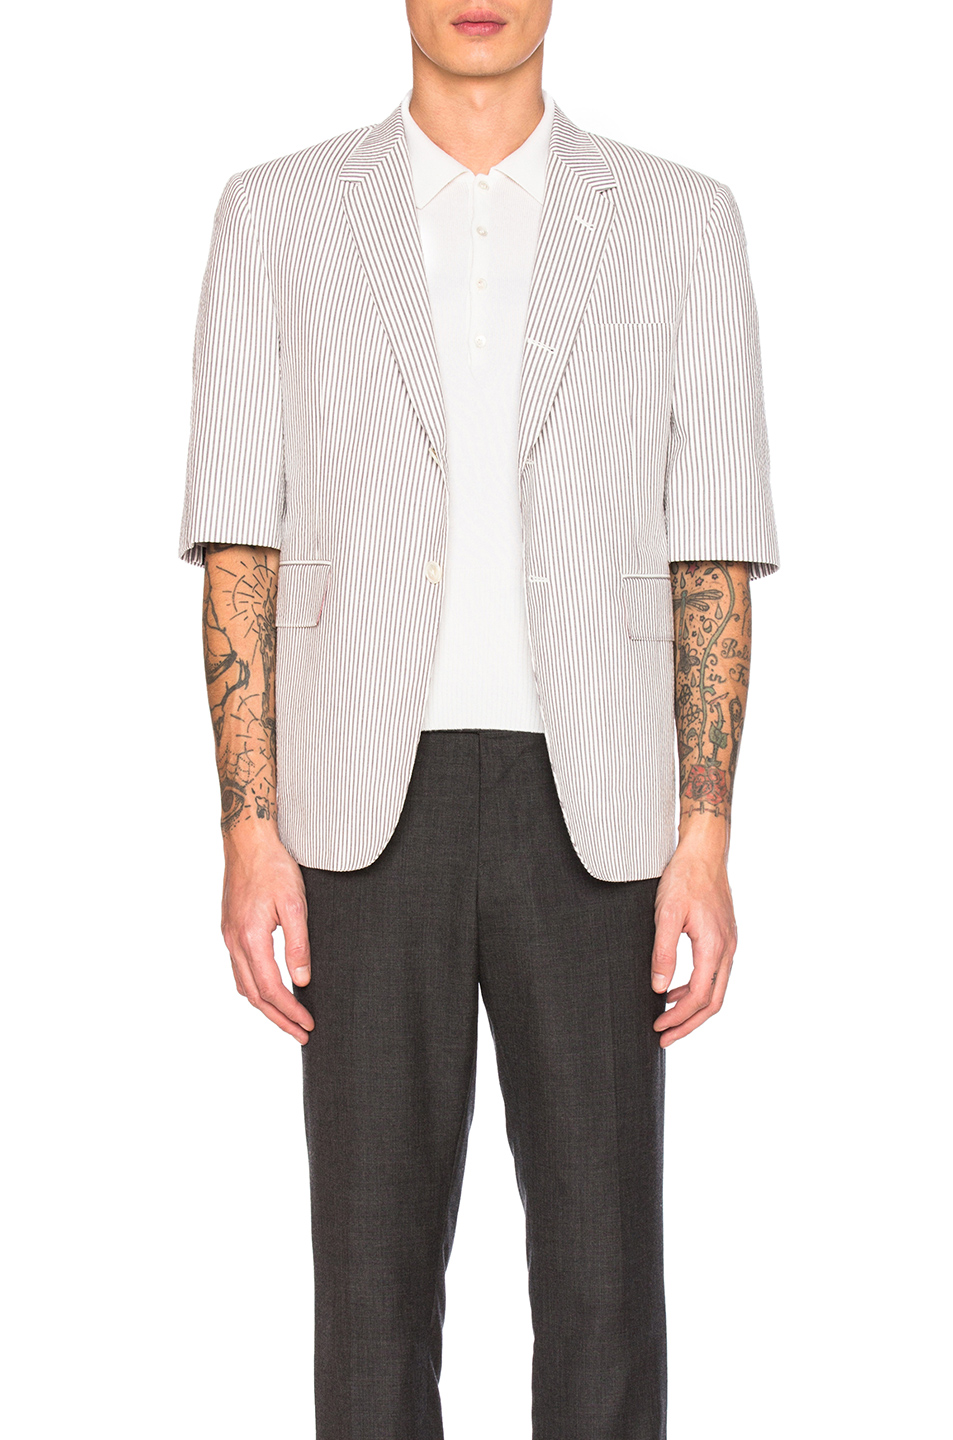 Thom Browne Short Sleeve Seersucker Blazer in Gray,Stripes